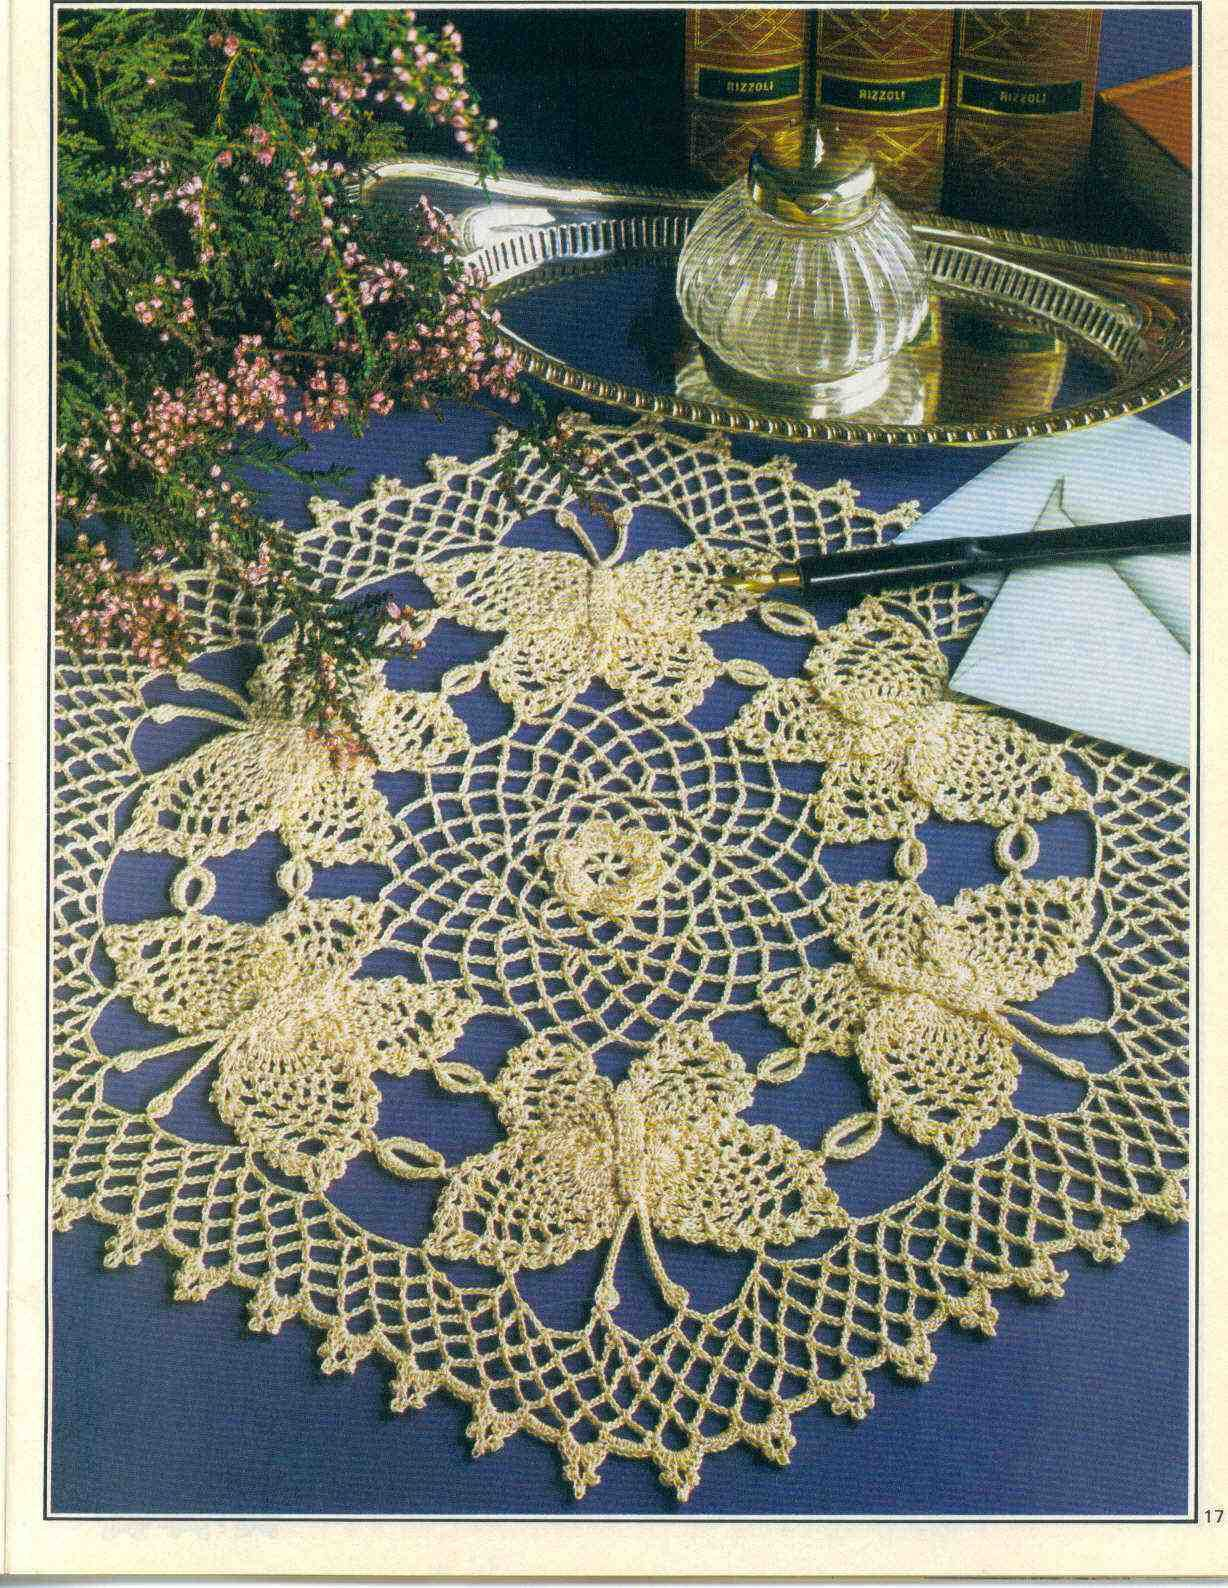 Five hour doily free patterns download free patterns t ii crochet doilies patterns free for everyone bankloansurffo Image collections